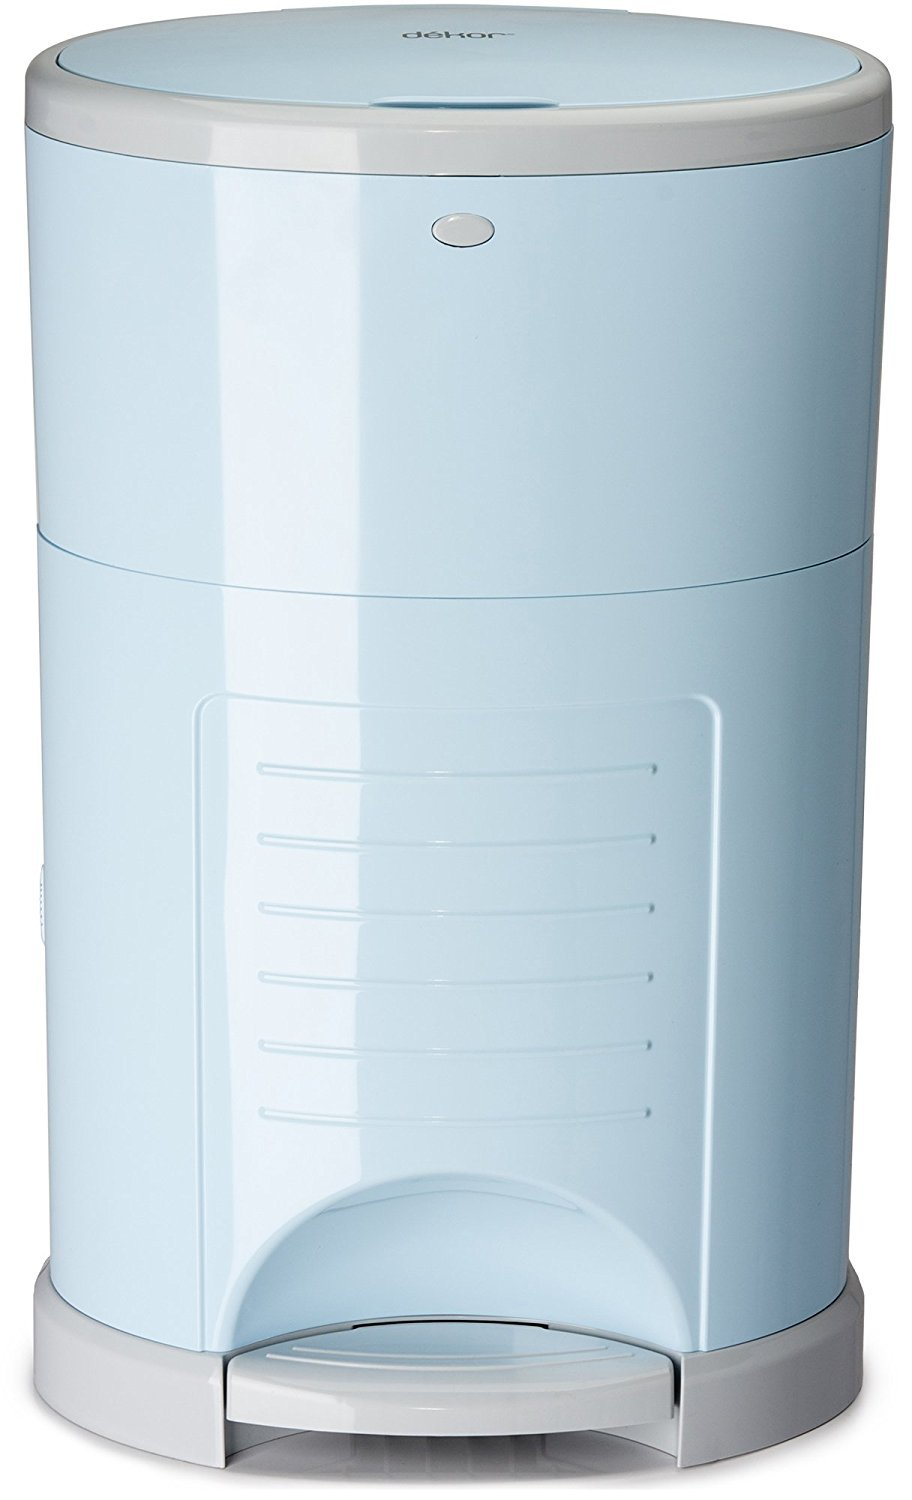 Dekor Plus Hands-Free Diaper Pail   Soft Blue   Easiest to Use   Just Step – Drop – Done   Doesn't Absorb Odors   20 Second Bag Change   Most Economical Refill System  Great for Cloth Diapers